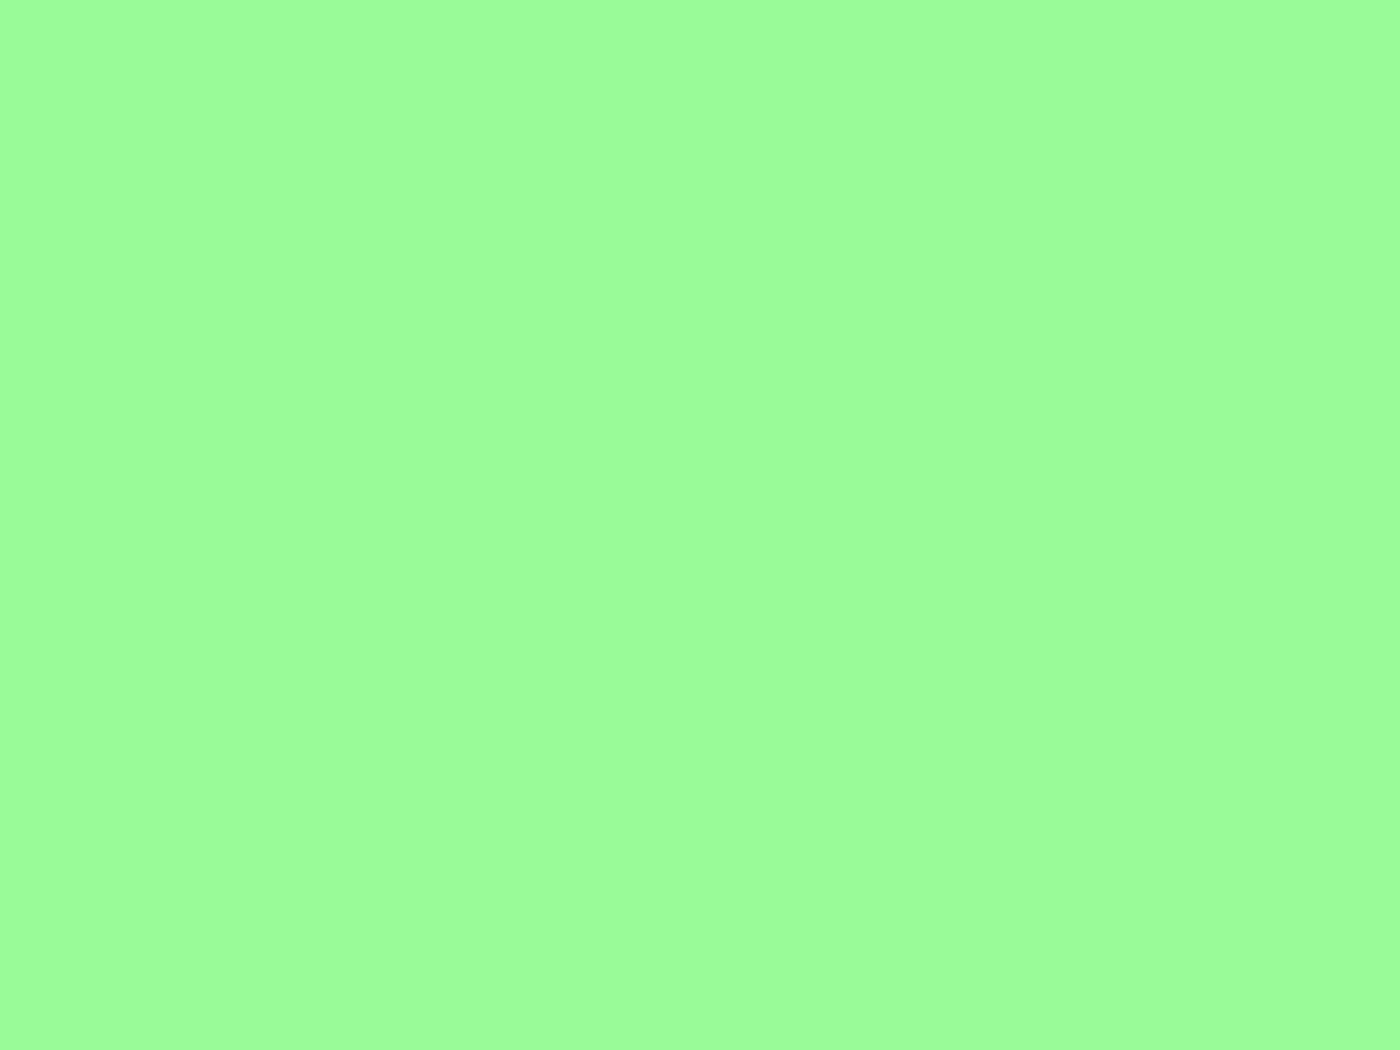 1400x1050 Pale Green Solid Color Background